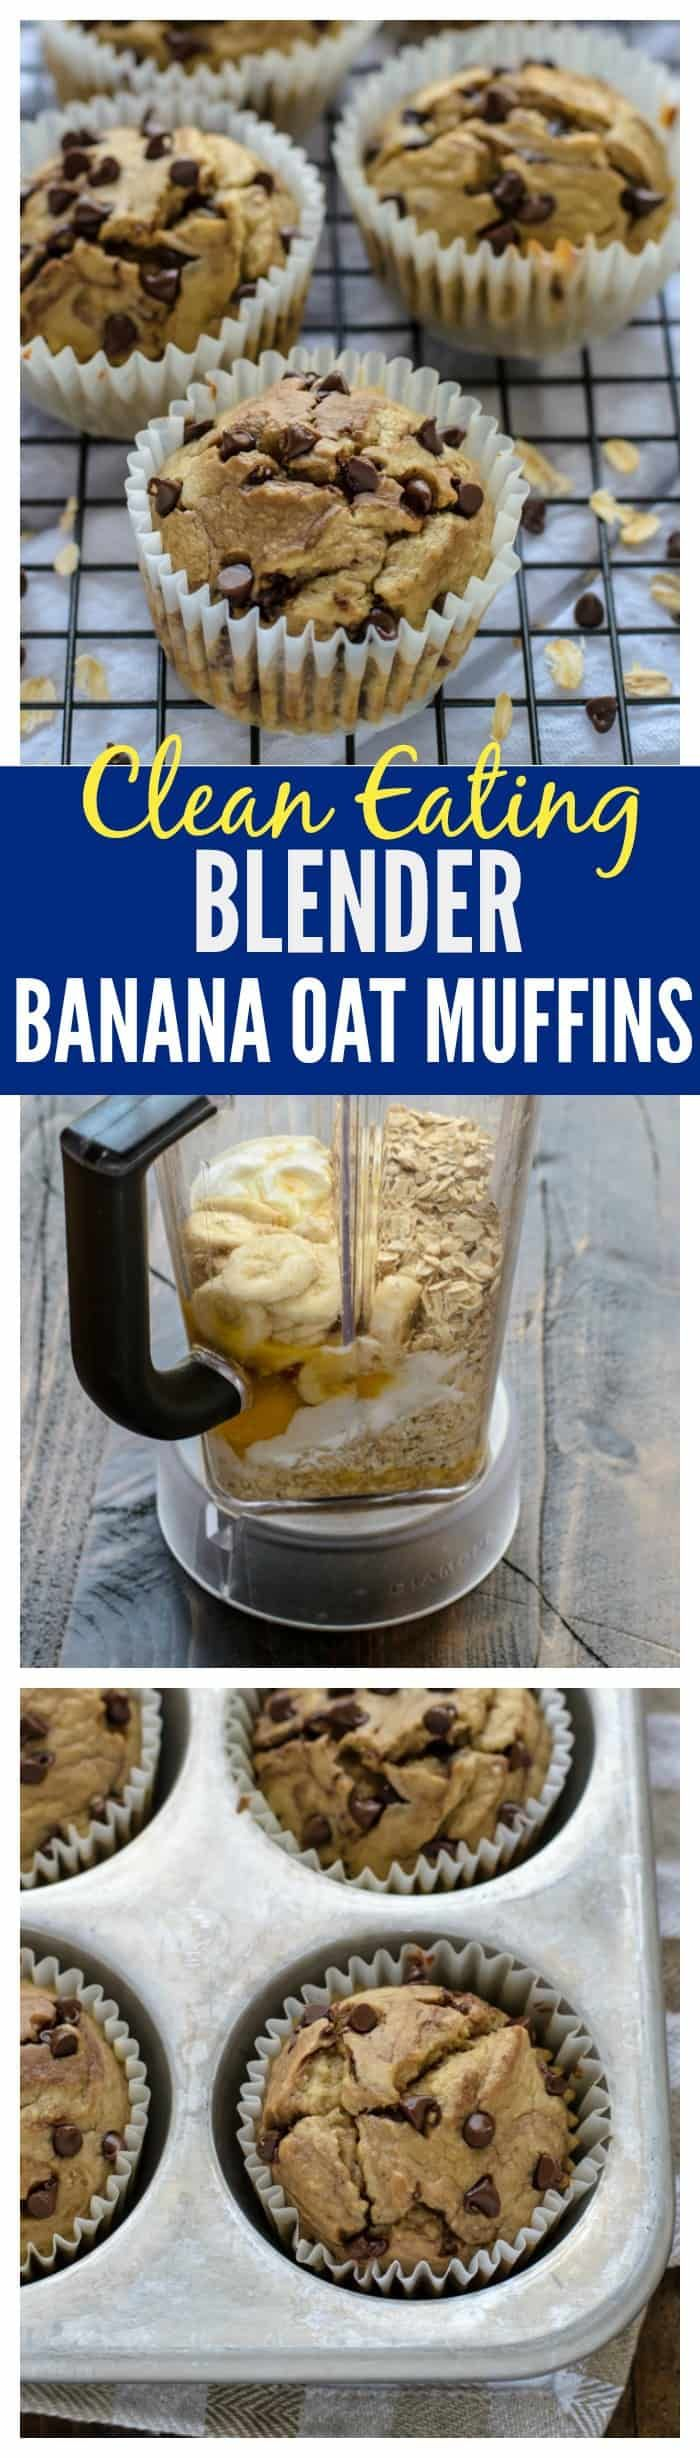 Muffins made with no flour, no butter, and no oil! This healthier banana oatmeal muffins recipe is made in a blender. They're moist and delicious! #healthysnacks #muffins #baking #cleaneating #blenderrecipe